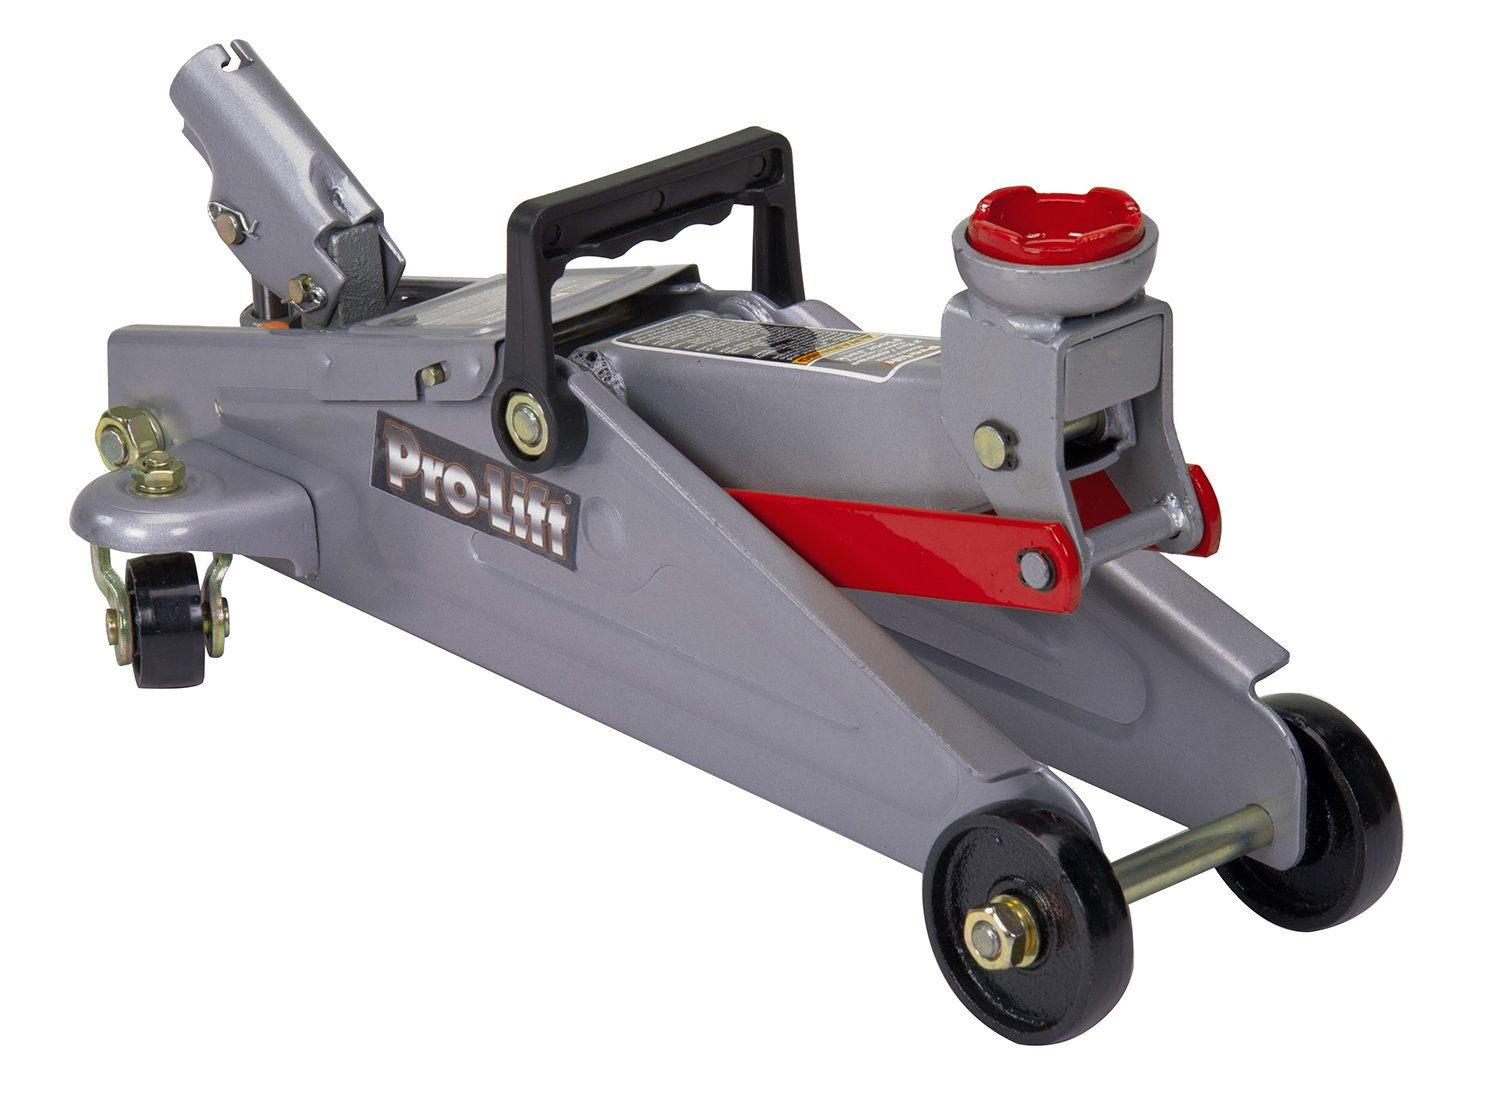 Pro-LifT F-2330BMC Grey Floor Jack and Stand Combo by Pro-LifT (Image #2)